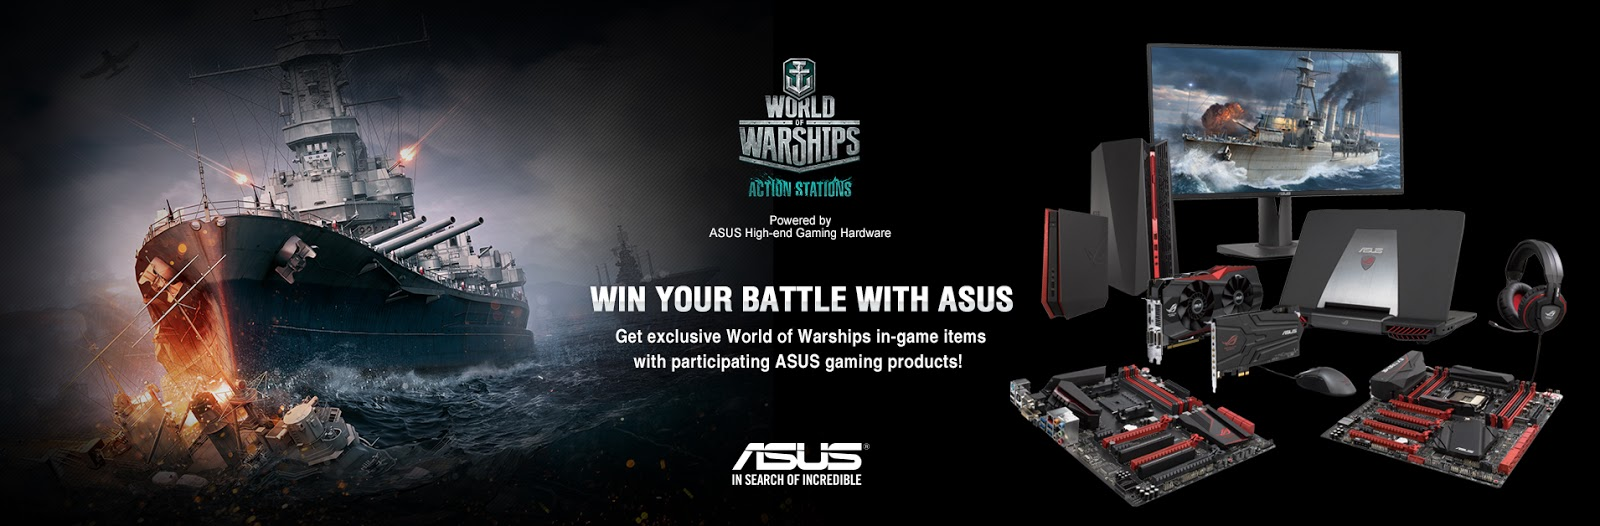 ASUS World of Warships Exclusive Partnership